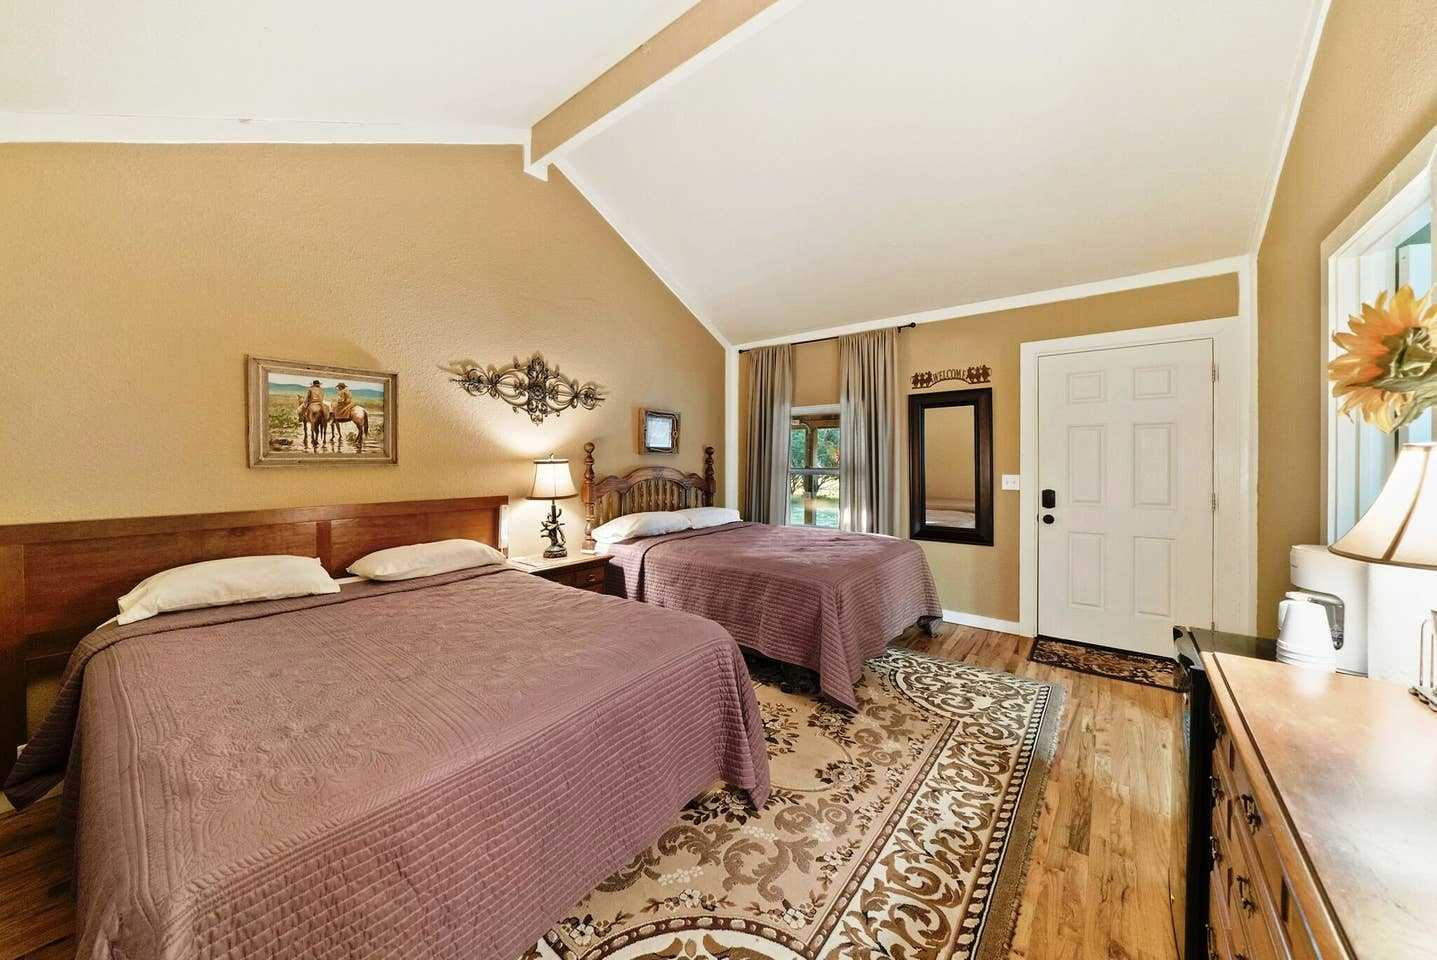 Two big queen-sized beds offer a soft and comfortable place to recharge and look forward to your next Hill Country morning!